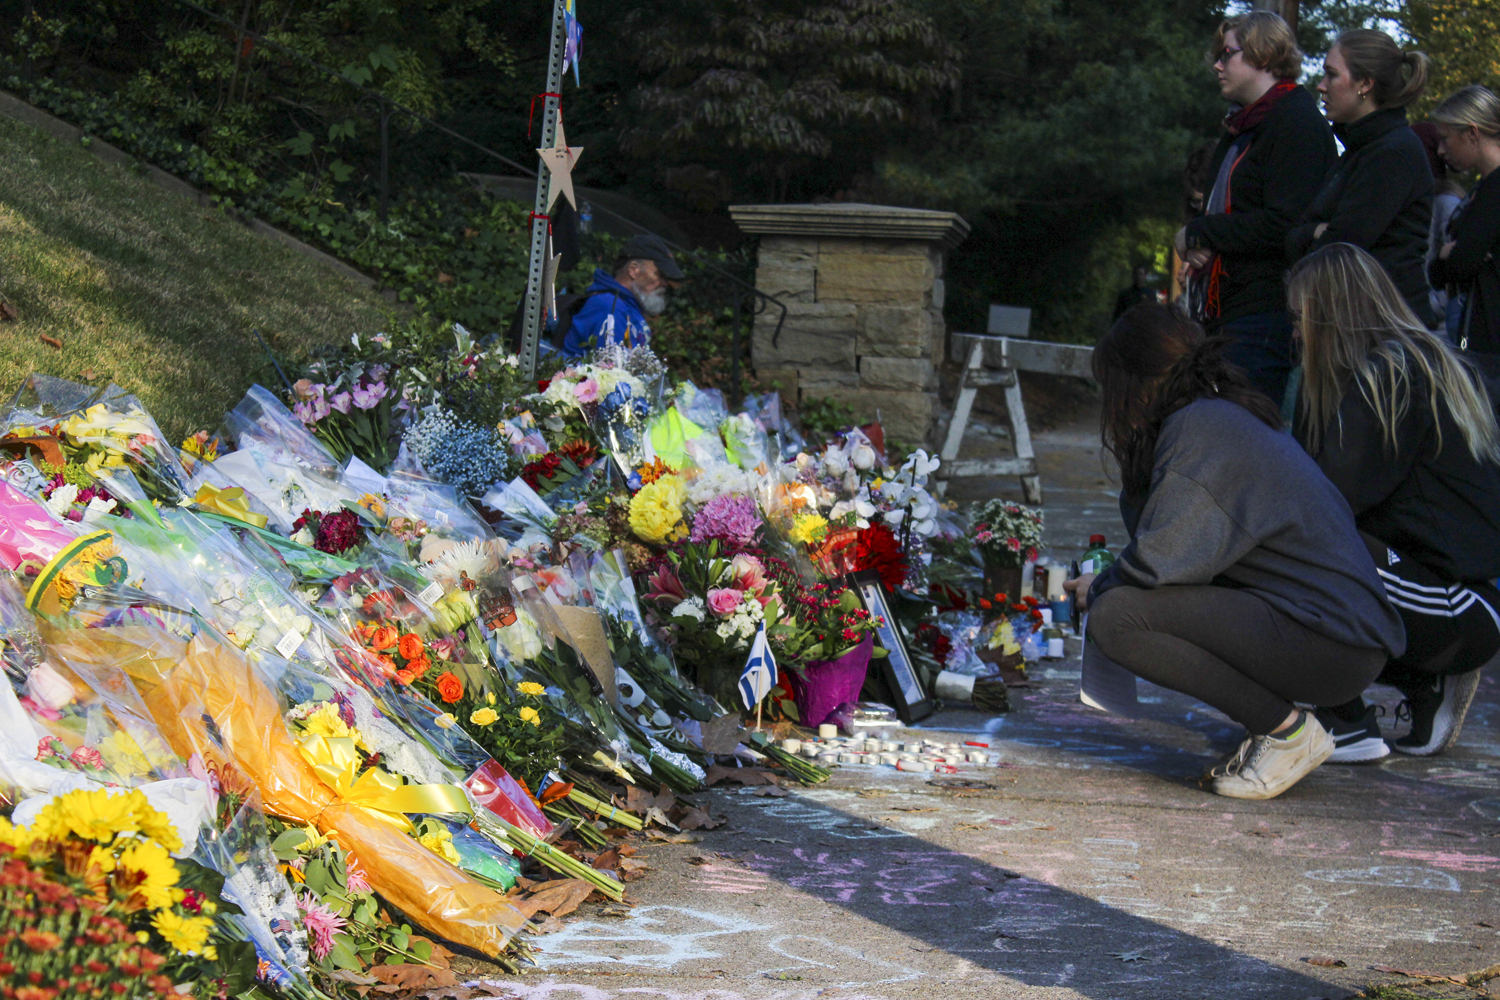 Mourners gather at a small memorial behind police lines near the Tree of Life Synagogue Oct. 30, 2018. On the other side of the barricades, President Donald Trump addressed the nation three days after the deadly Tree of Life shooting.